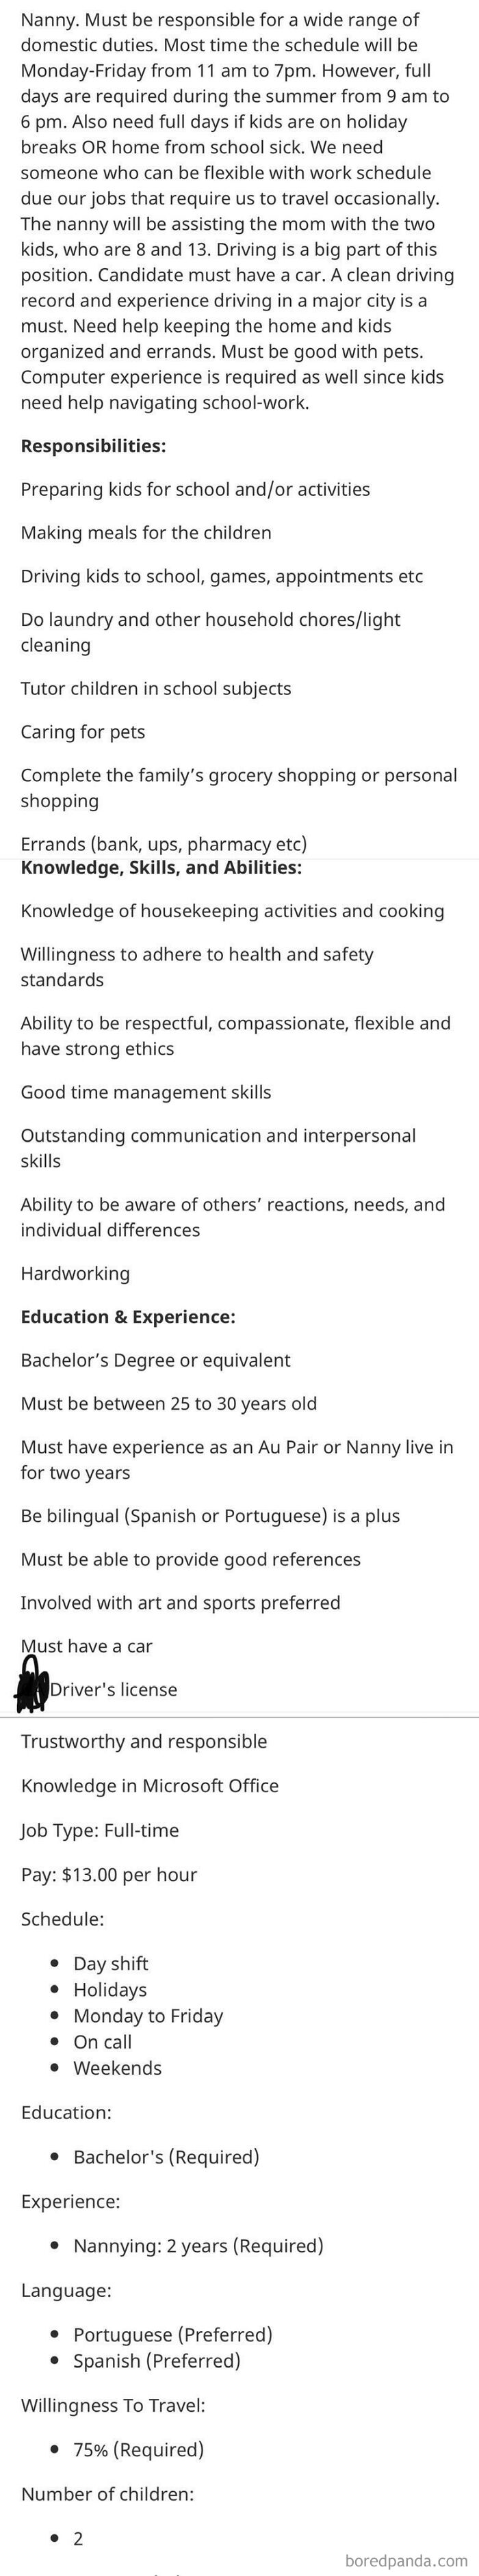 Be A Very Specific Age, Have A Bachelor's Degree, Be A Nanny, Housekeeper, Teacher And Personal Shopper...and More, All For $13/Hr